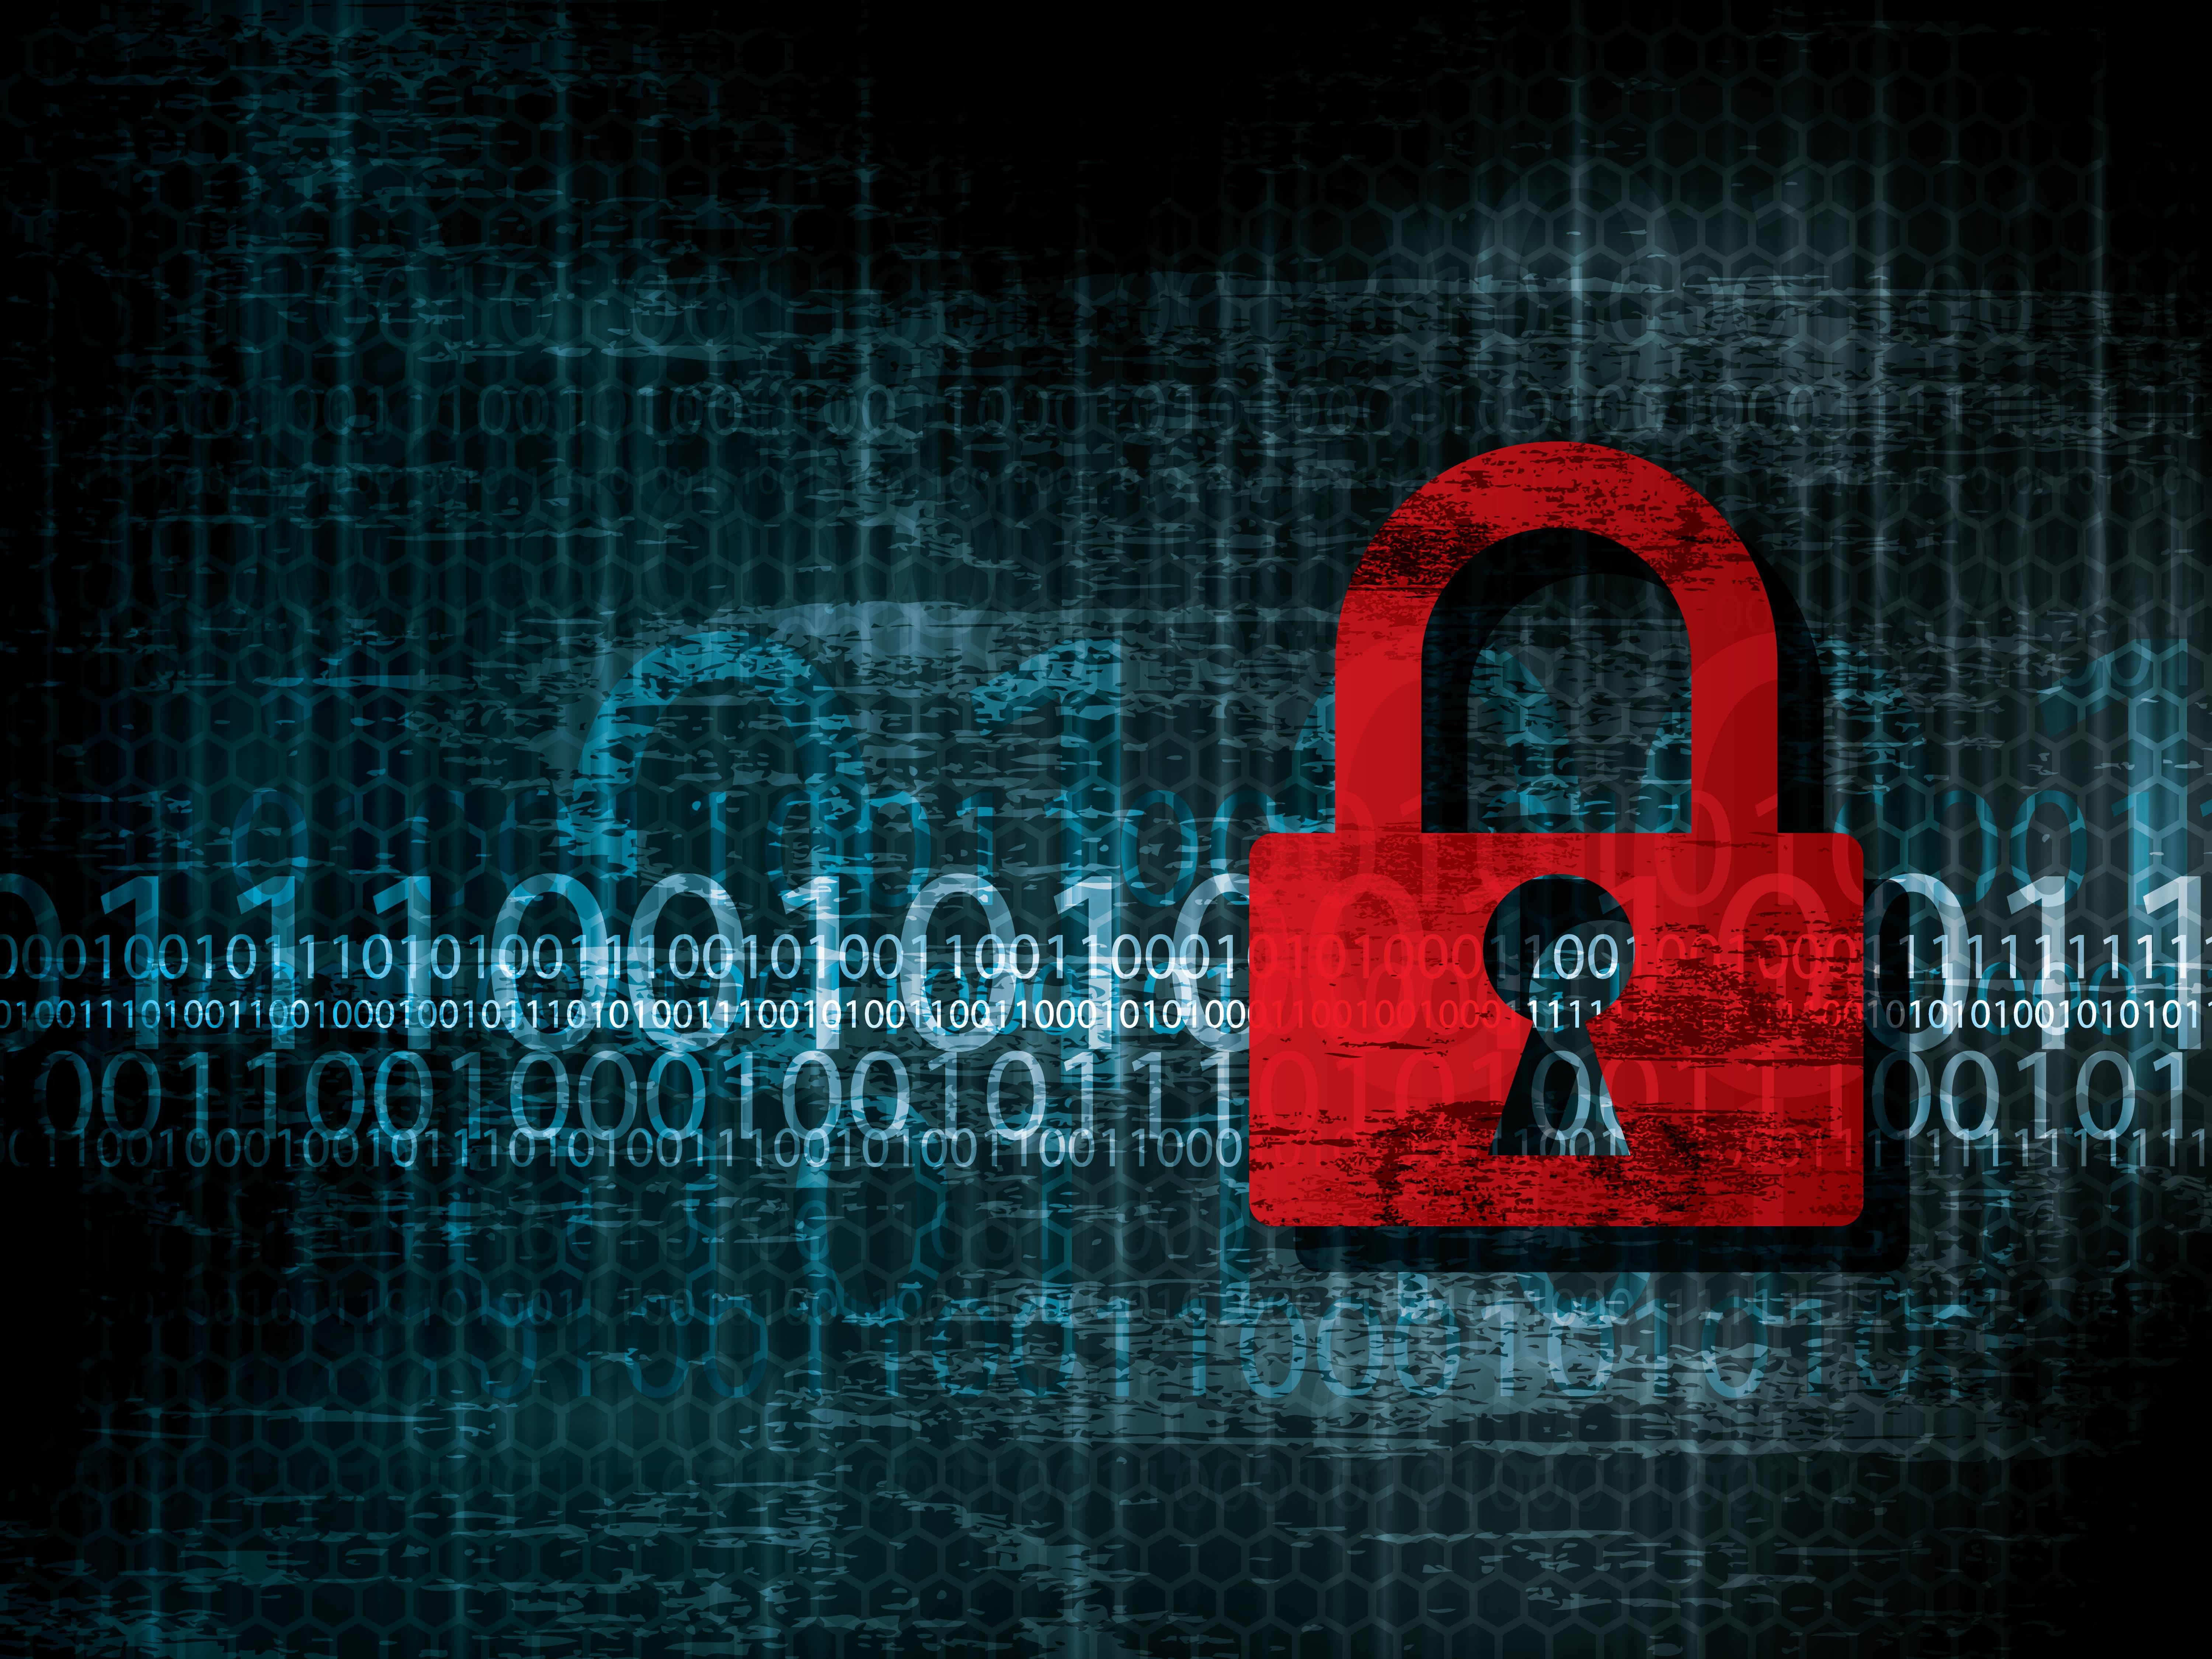 82% of healthcare organizations have experienced an IoT-focused cyberattack, survey finds